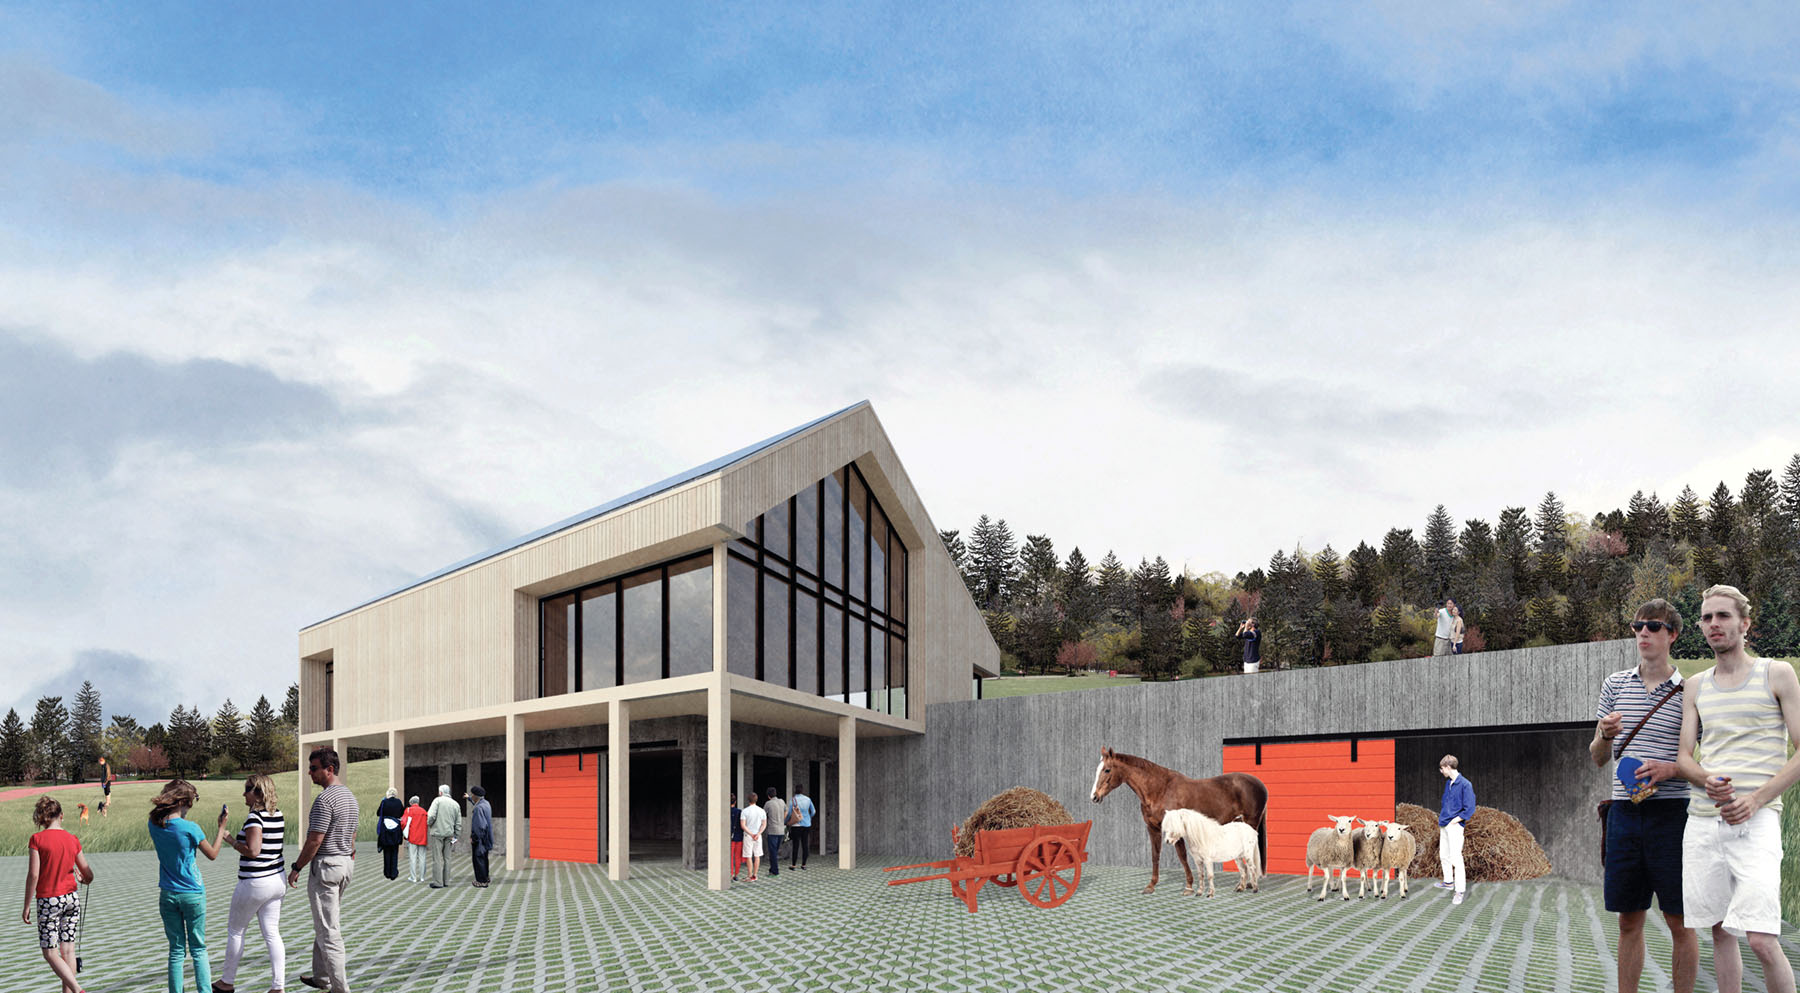 A render of a restoration project by Woodward Sheppard Architects - O'Brian Farm